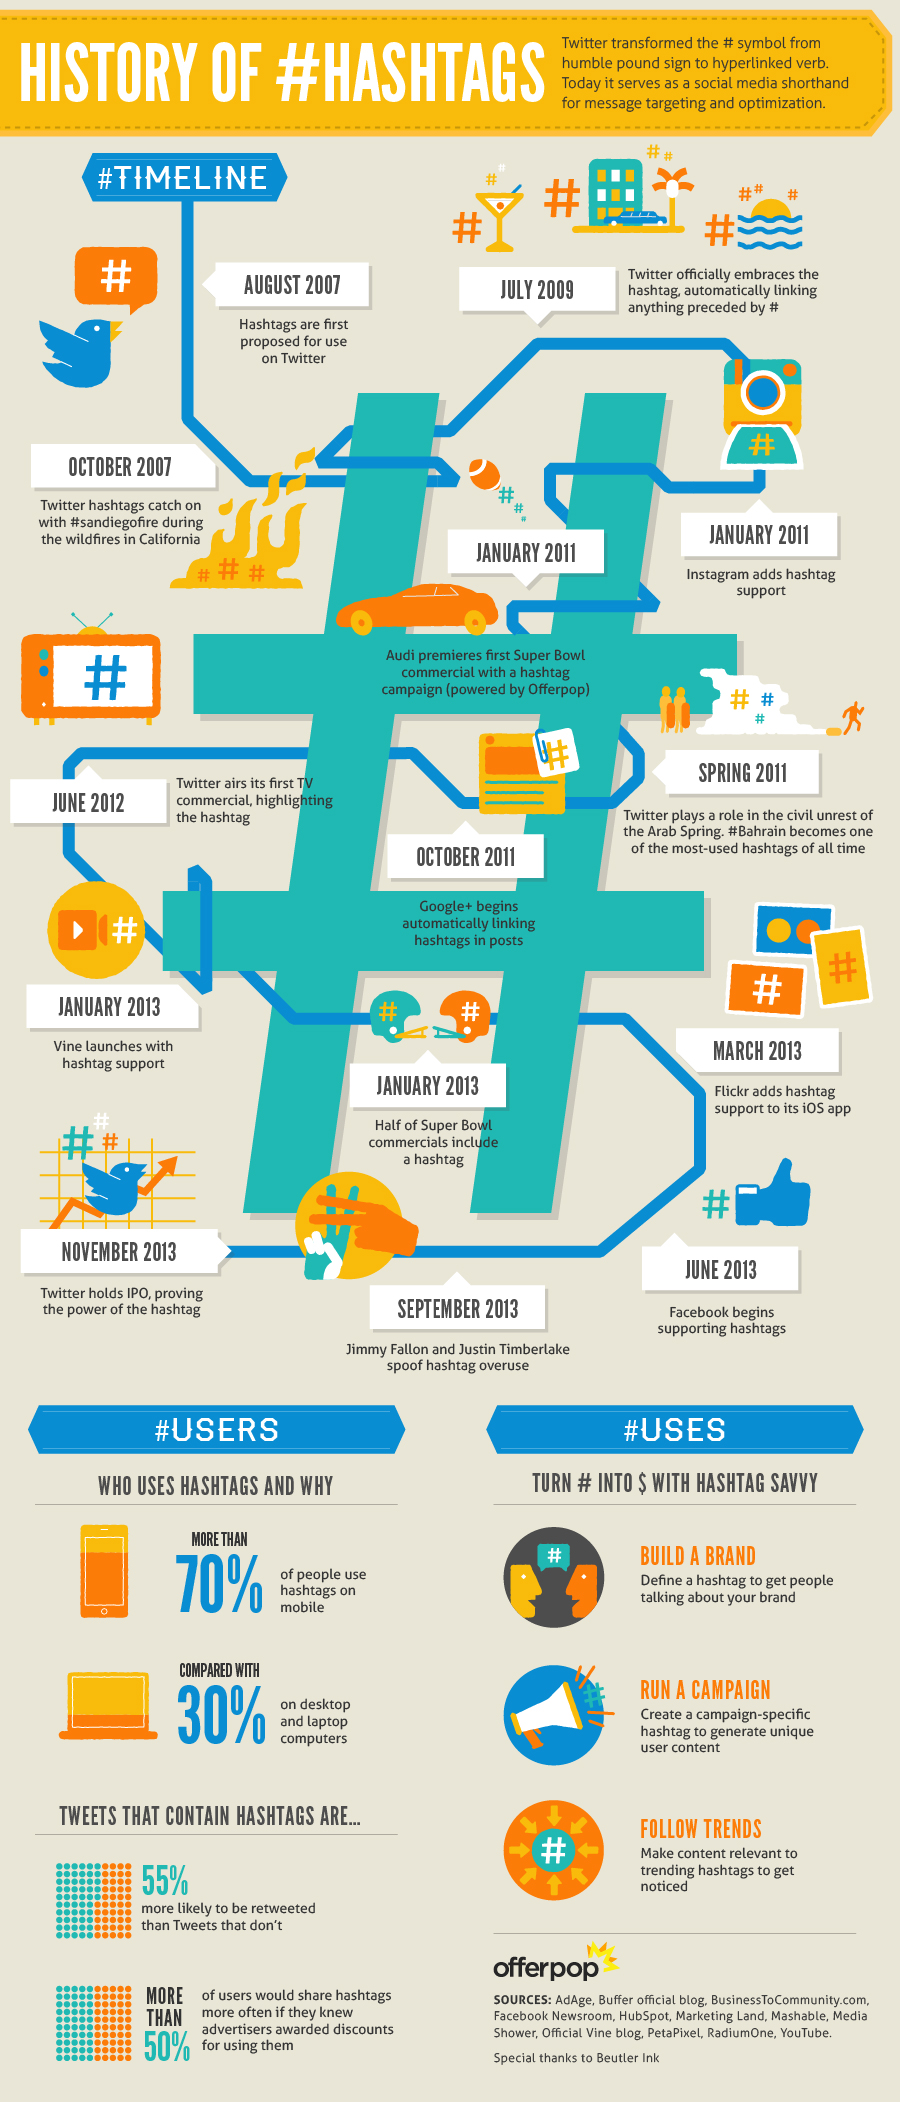 Check out this cool blog about hashtags I found while searching the web- They even made this cool chart!  http://www.digitalinformationworld.com/2013/11/how-twitter-transformed-hashtag-symbol.html